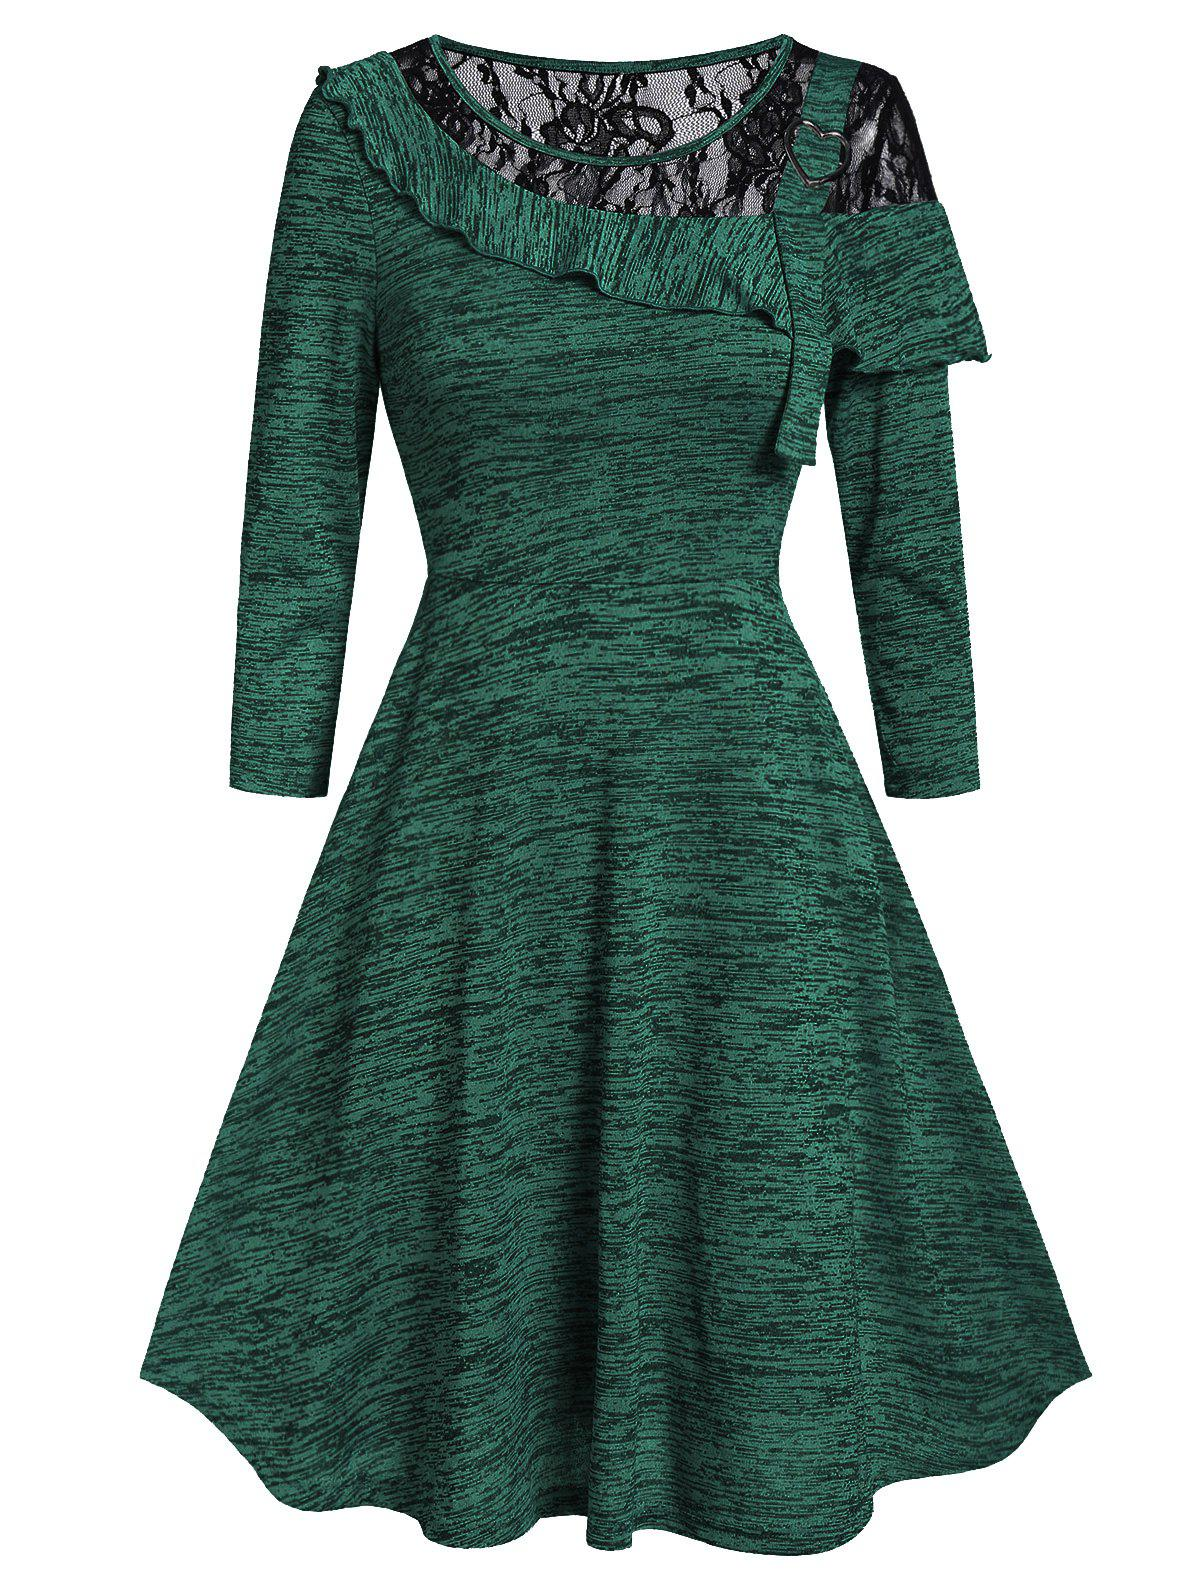 Marled Lace Insert Round Collar Fit And Flare Dress - DEEP GREEN 2XL